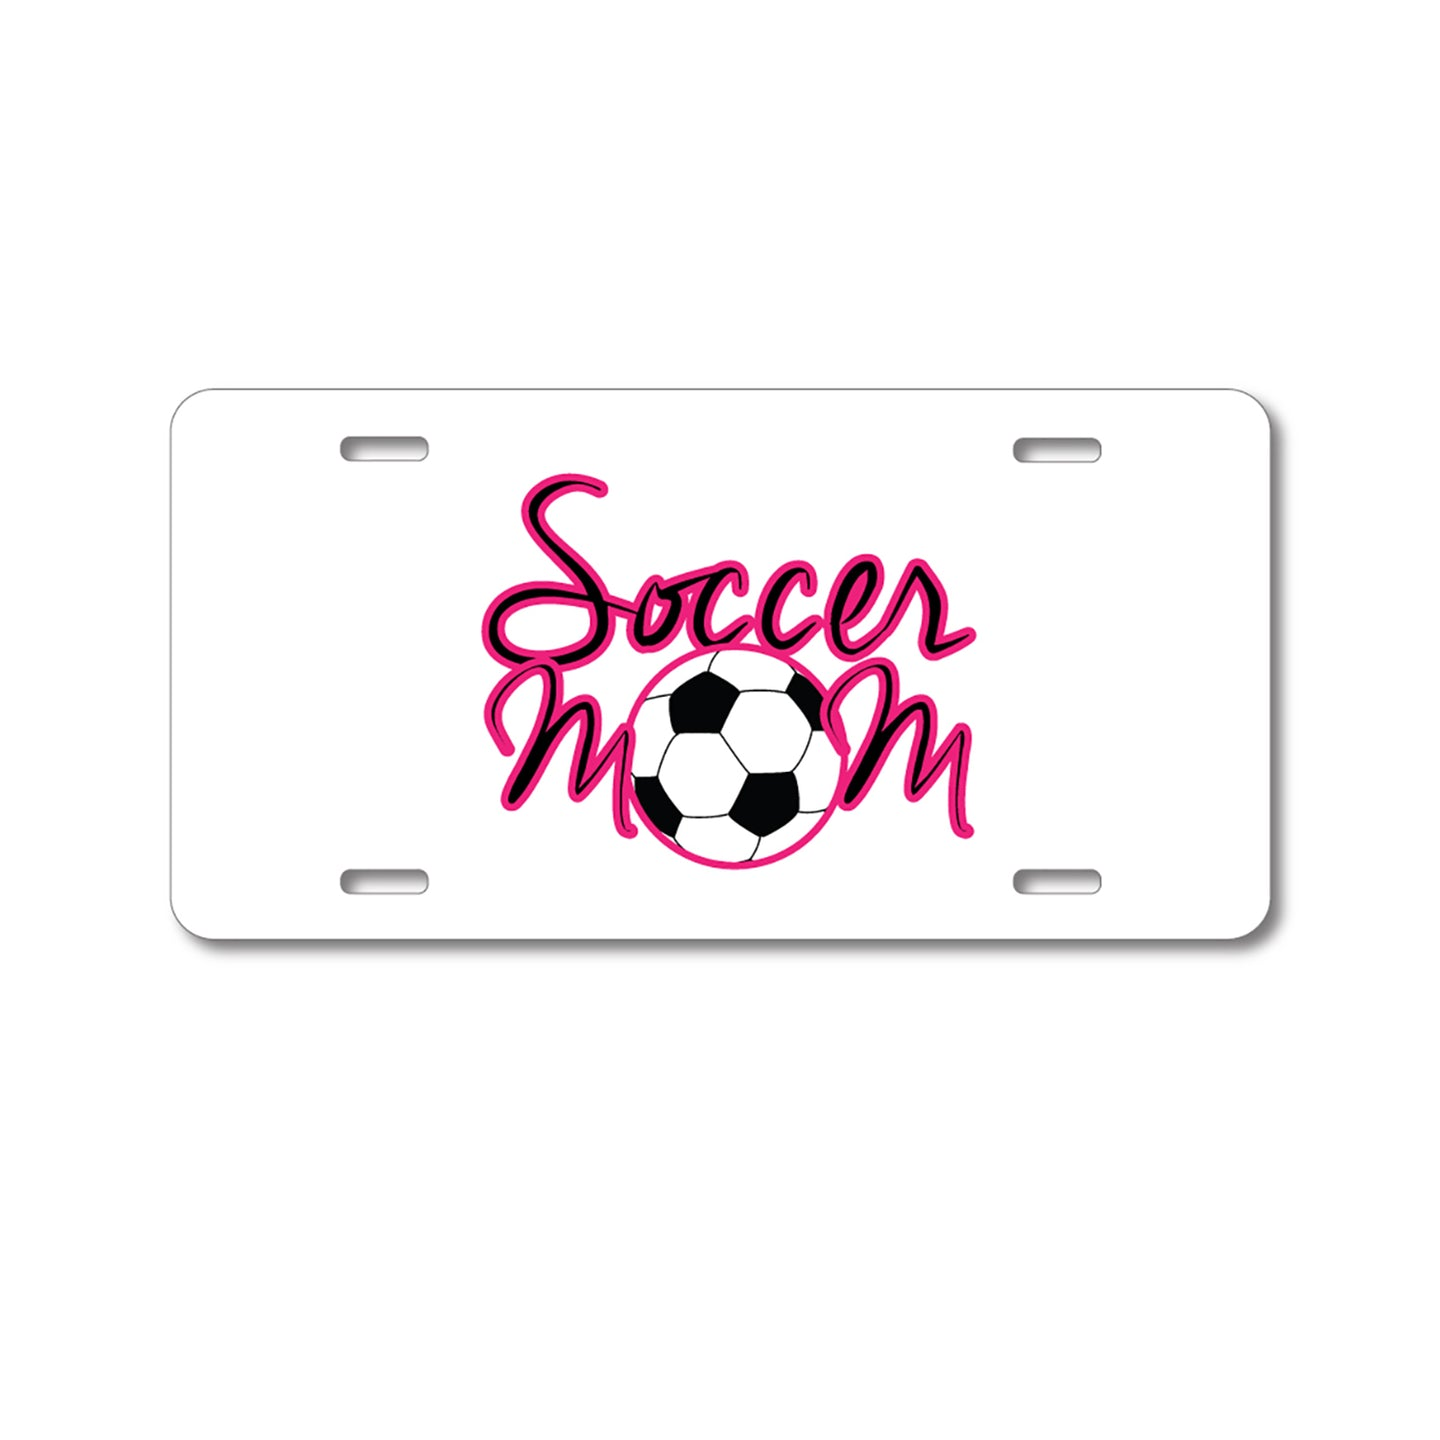 DistinctInk Custom Aluminum Decorative Vanity Front License Plate - Soccer Mom Ball